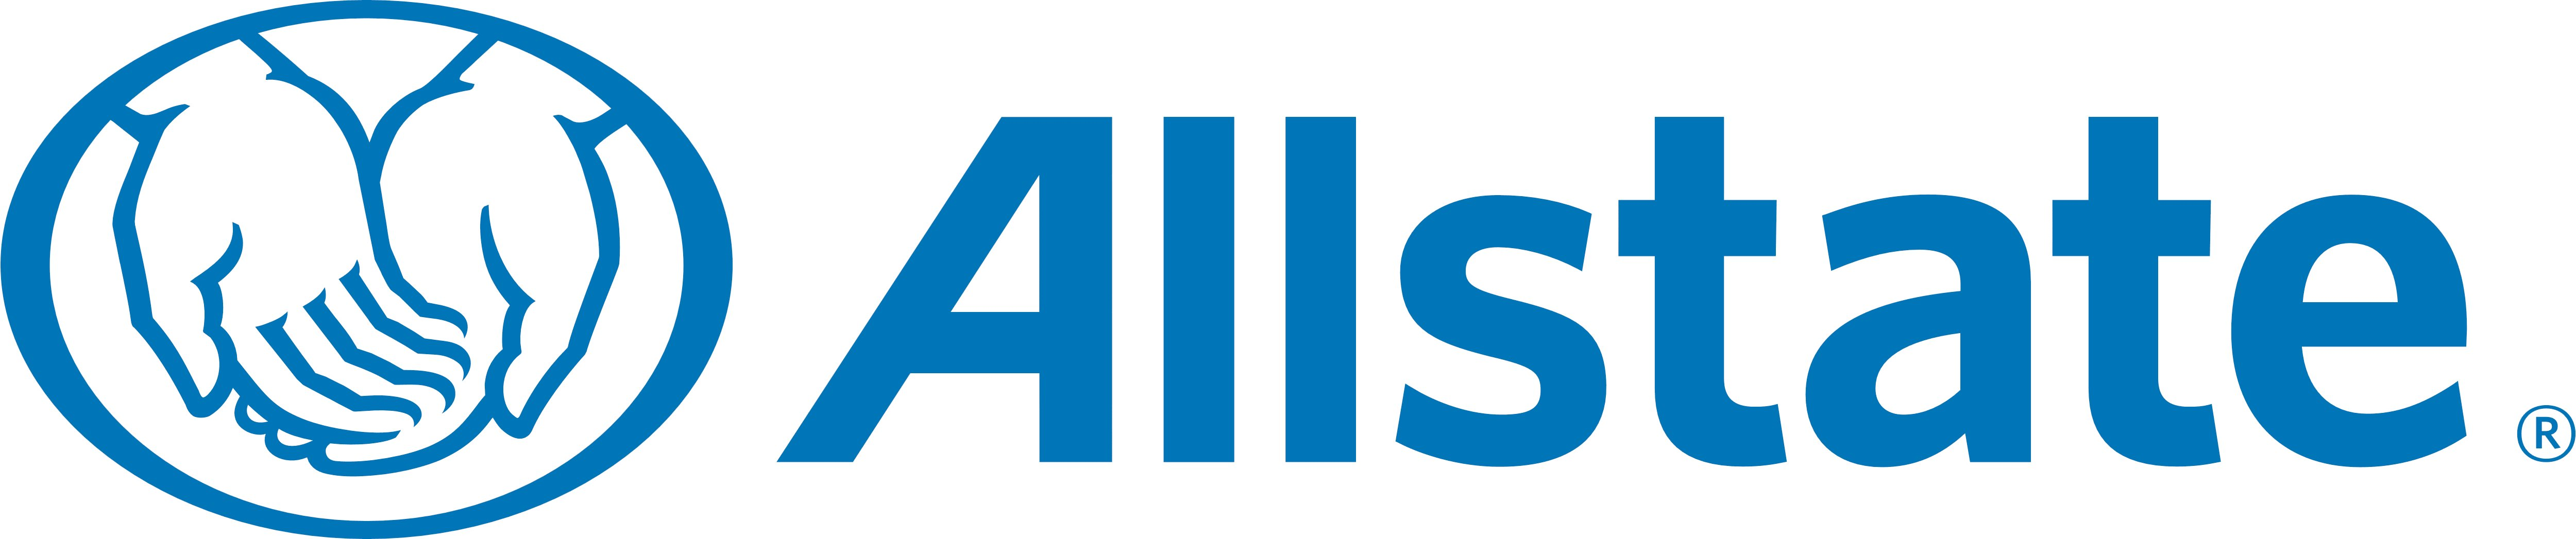 Allstate_Flood_Insurance_logo.jpg